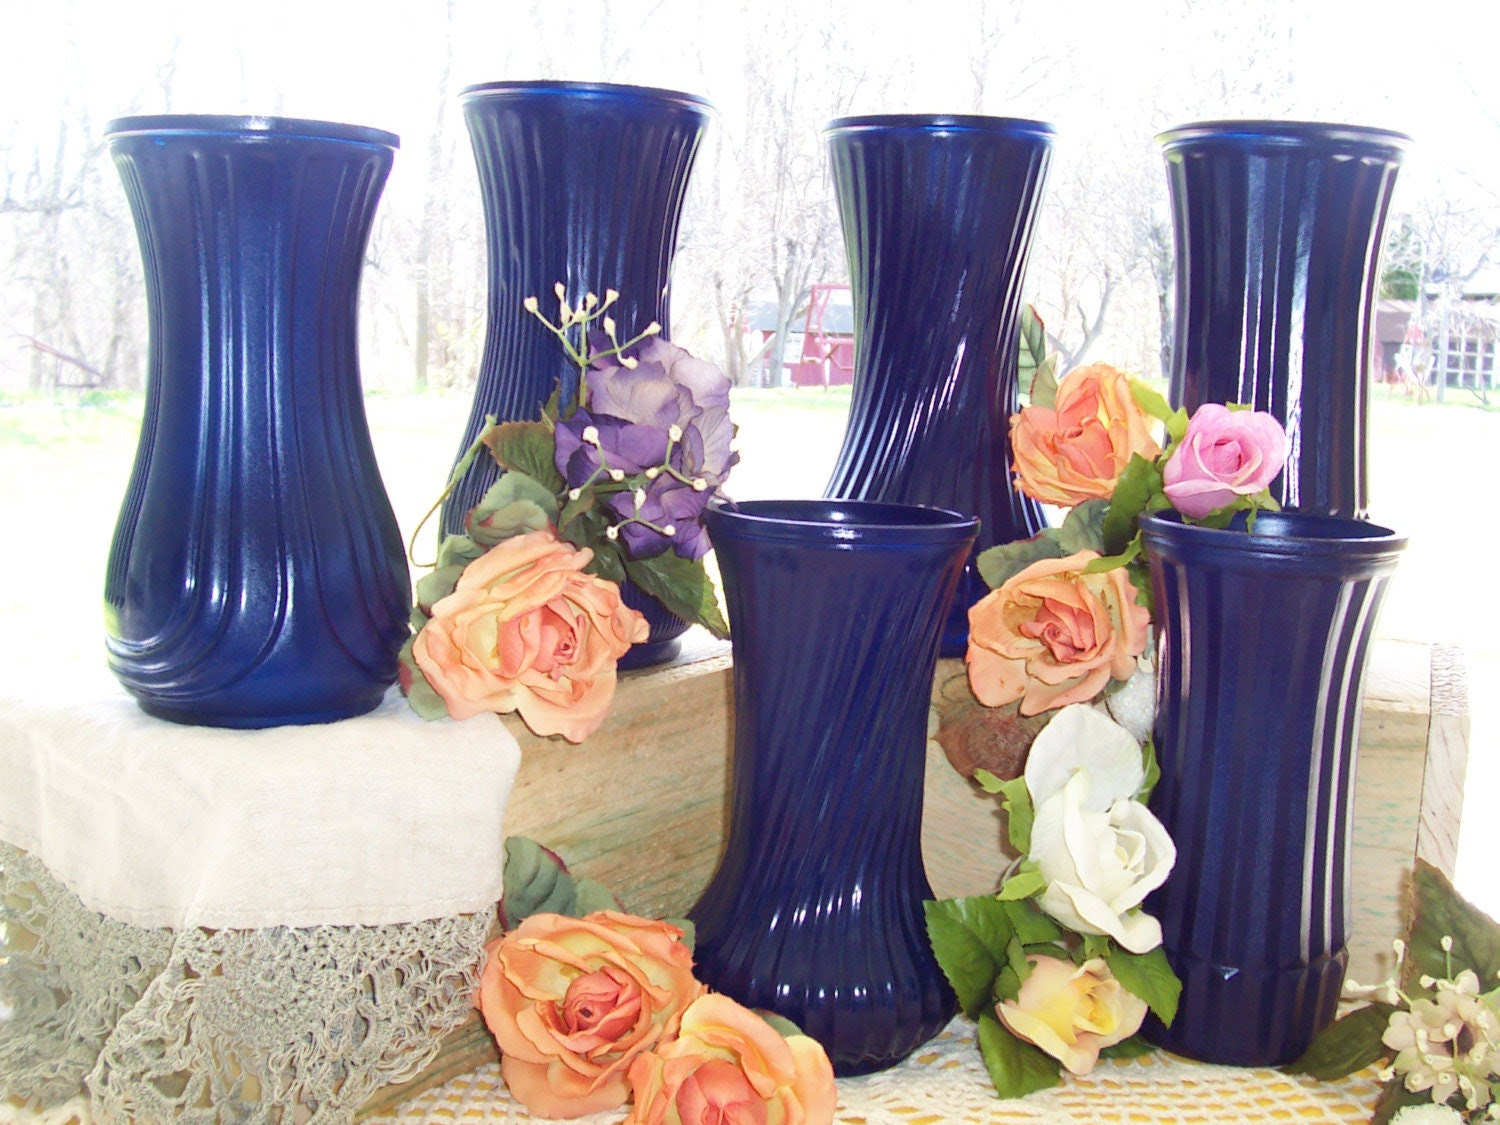 Vases Painted Table Wedding centerpiece flower 6 peacock shabby chic blue reception decorations glass country rustic vases wedding